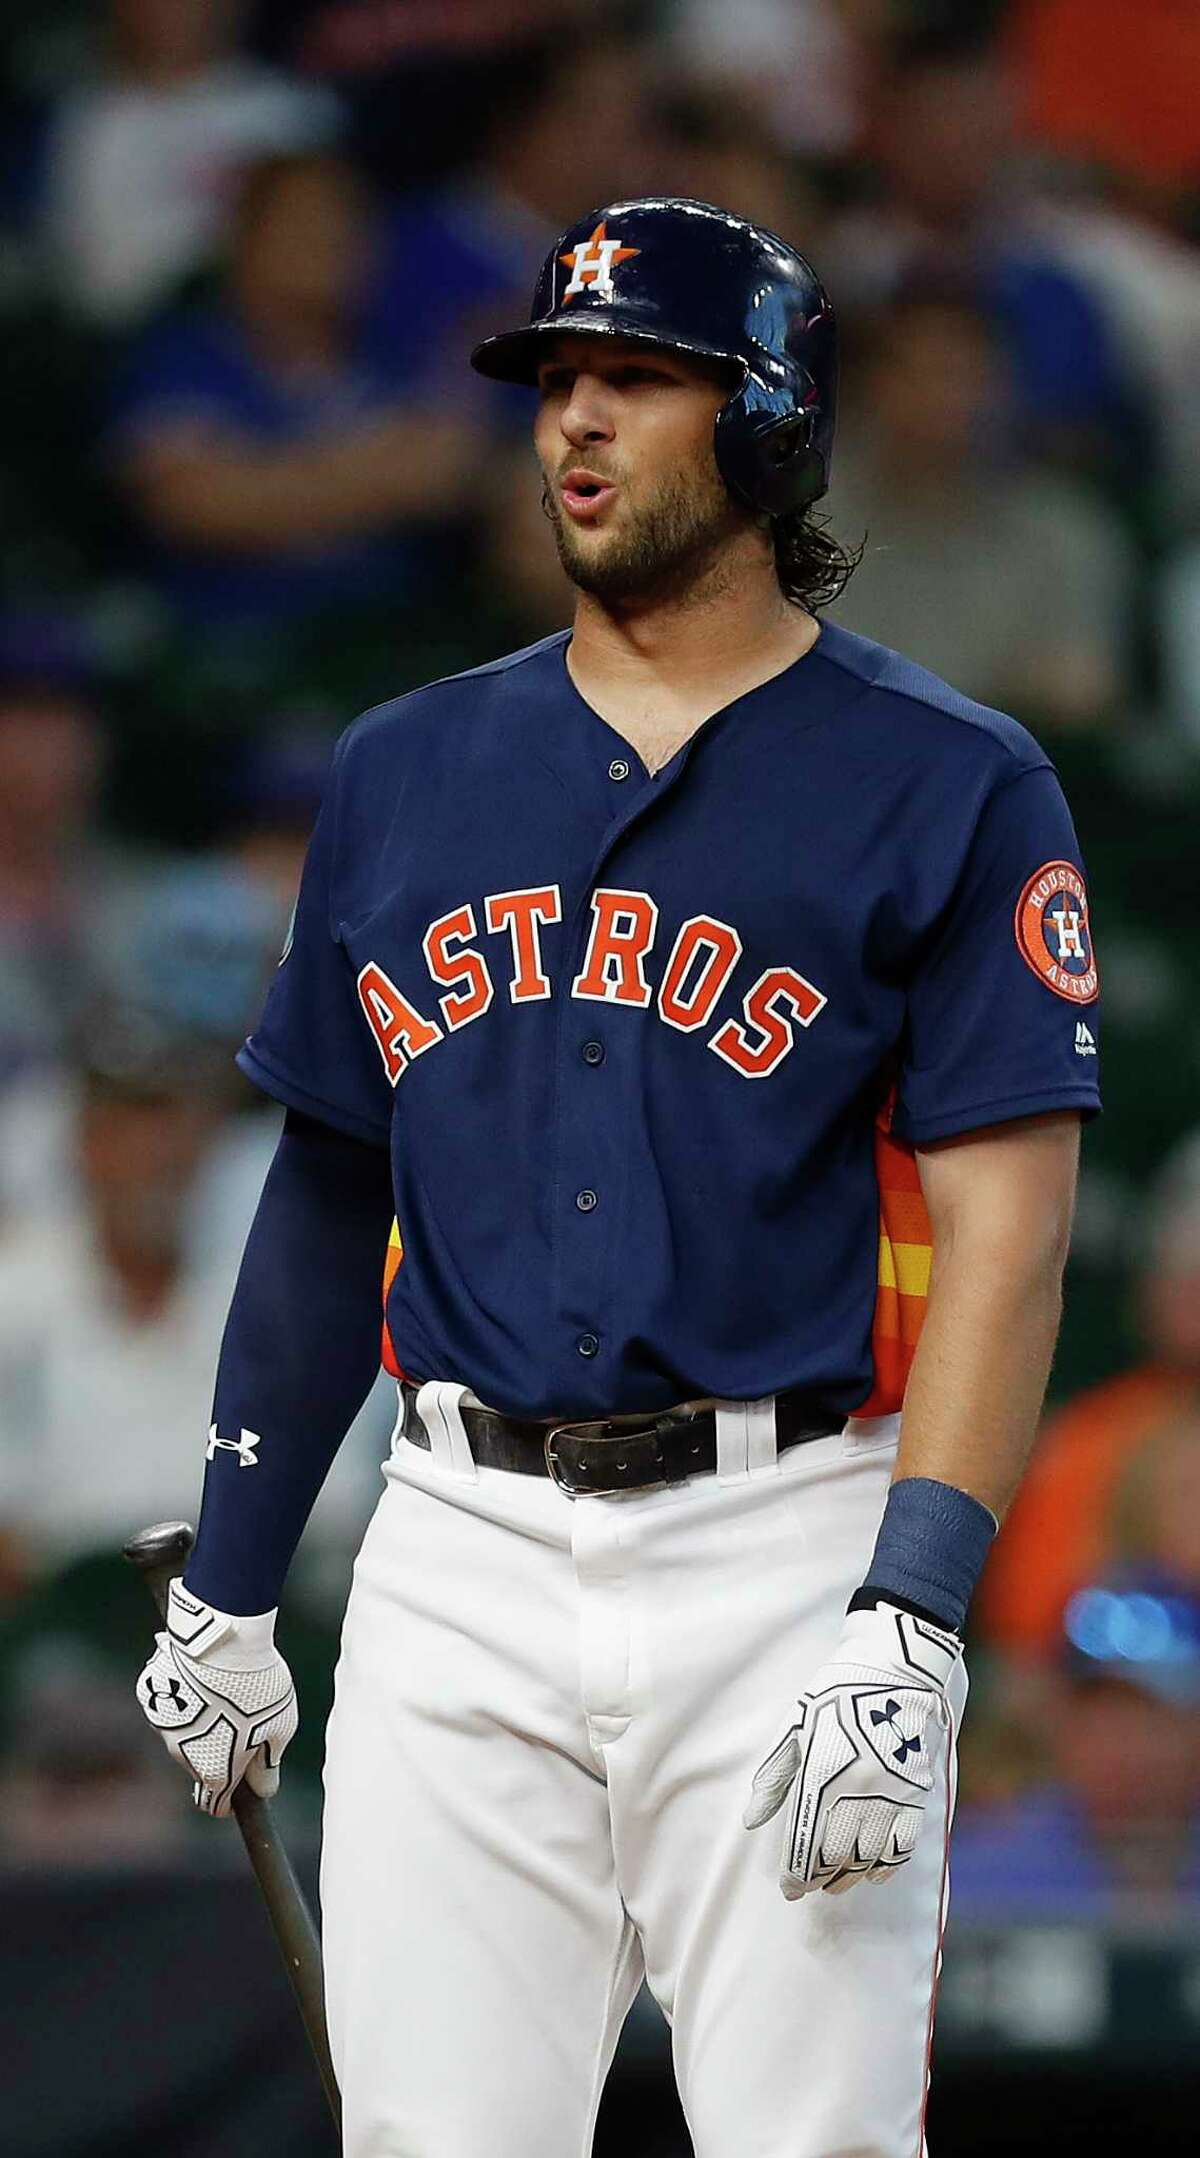 The Astros will activate center fielder Jake Marisnick from the disabled list on Monday. He missed six games because he suffered a concussion in a collision with the outfield wall on April 23.